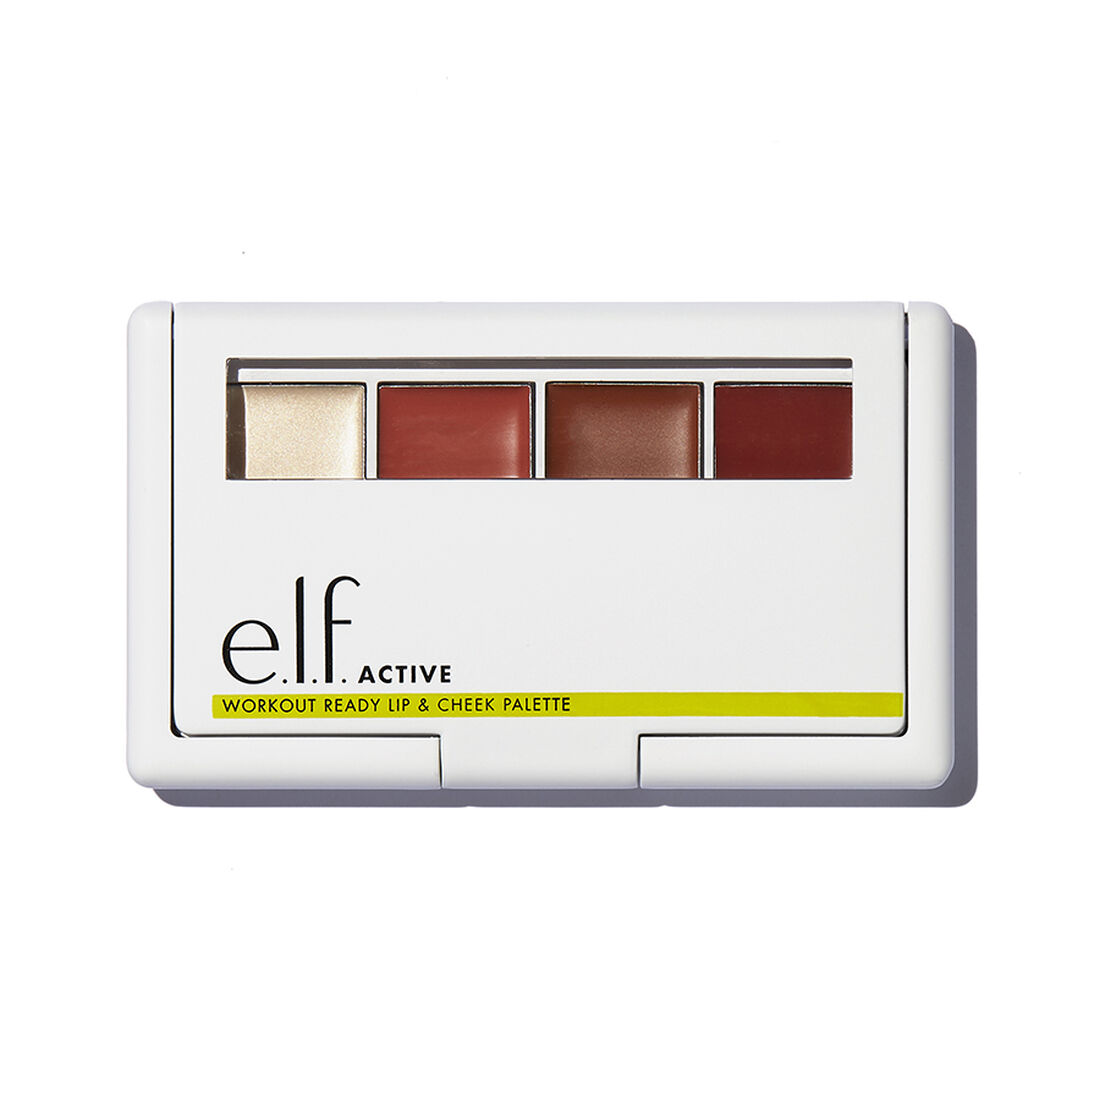 E.l.f Cosmetics - Workout Ready Lip & Cheek Palette